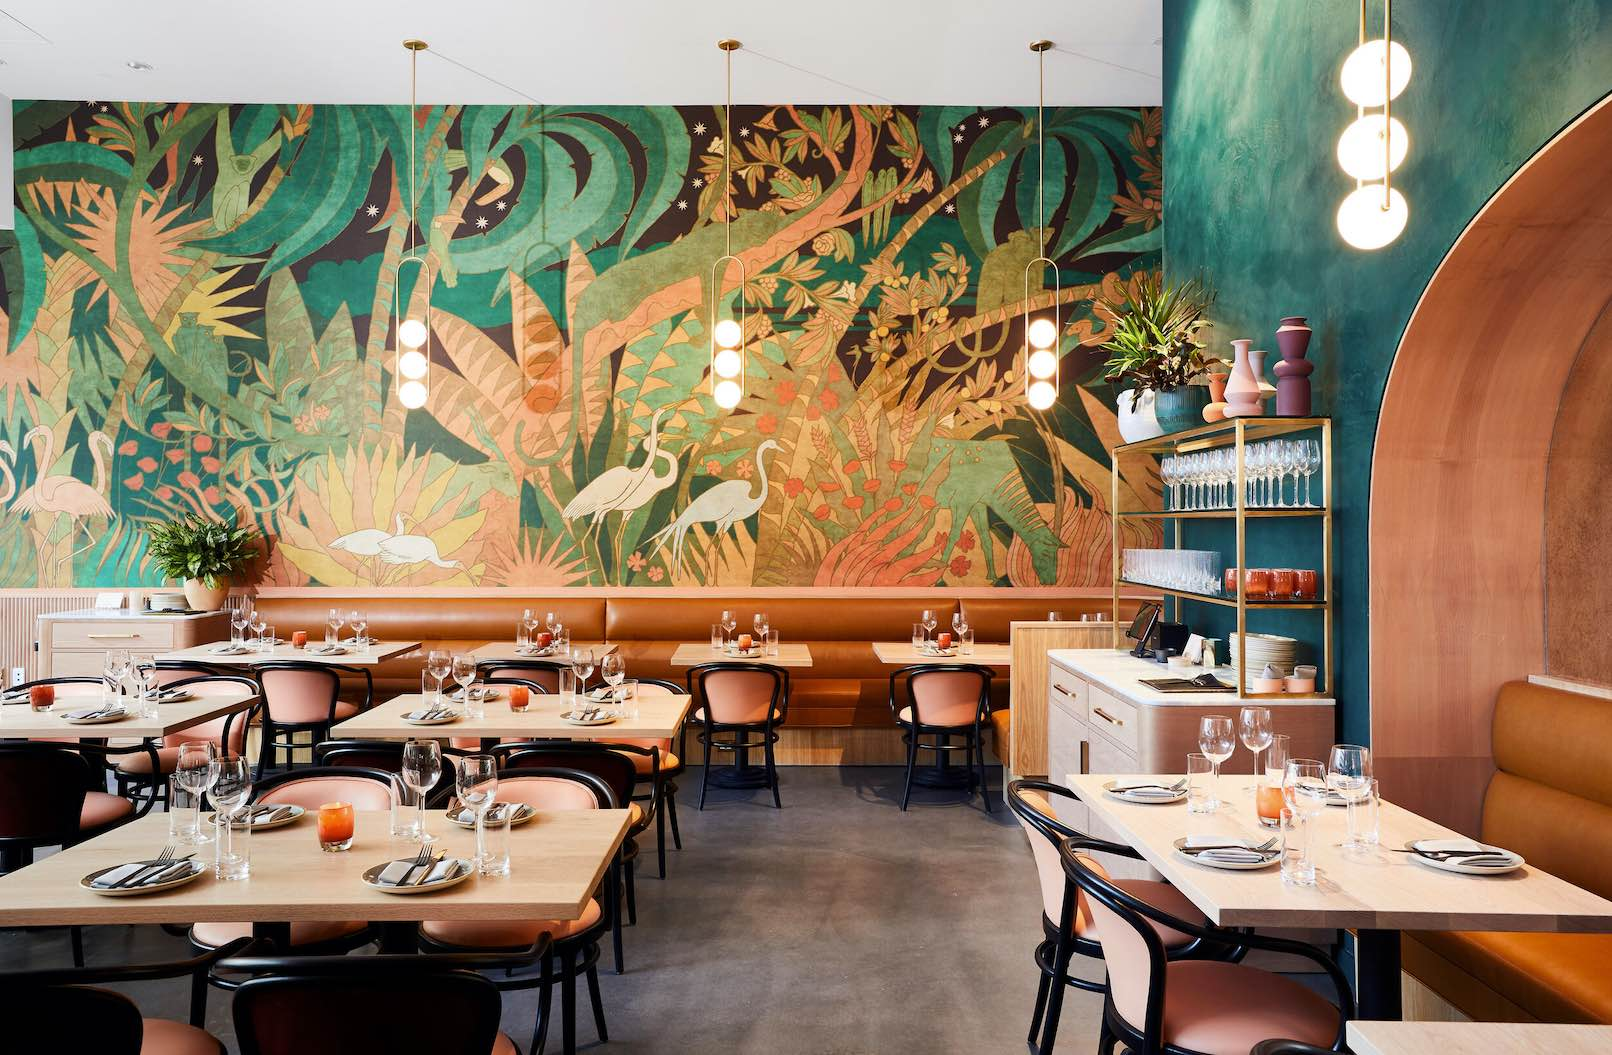 The 2021 Guide to 15 Coolest Restaurants in Los Angeles